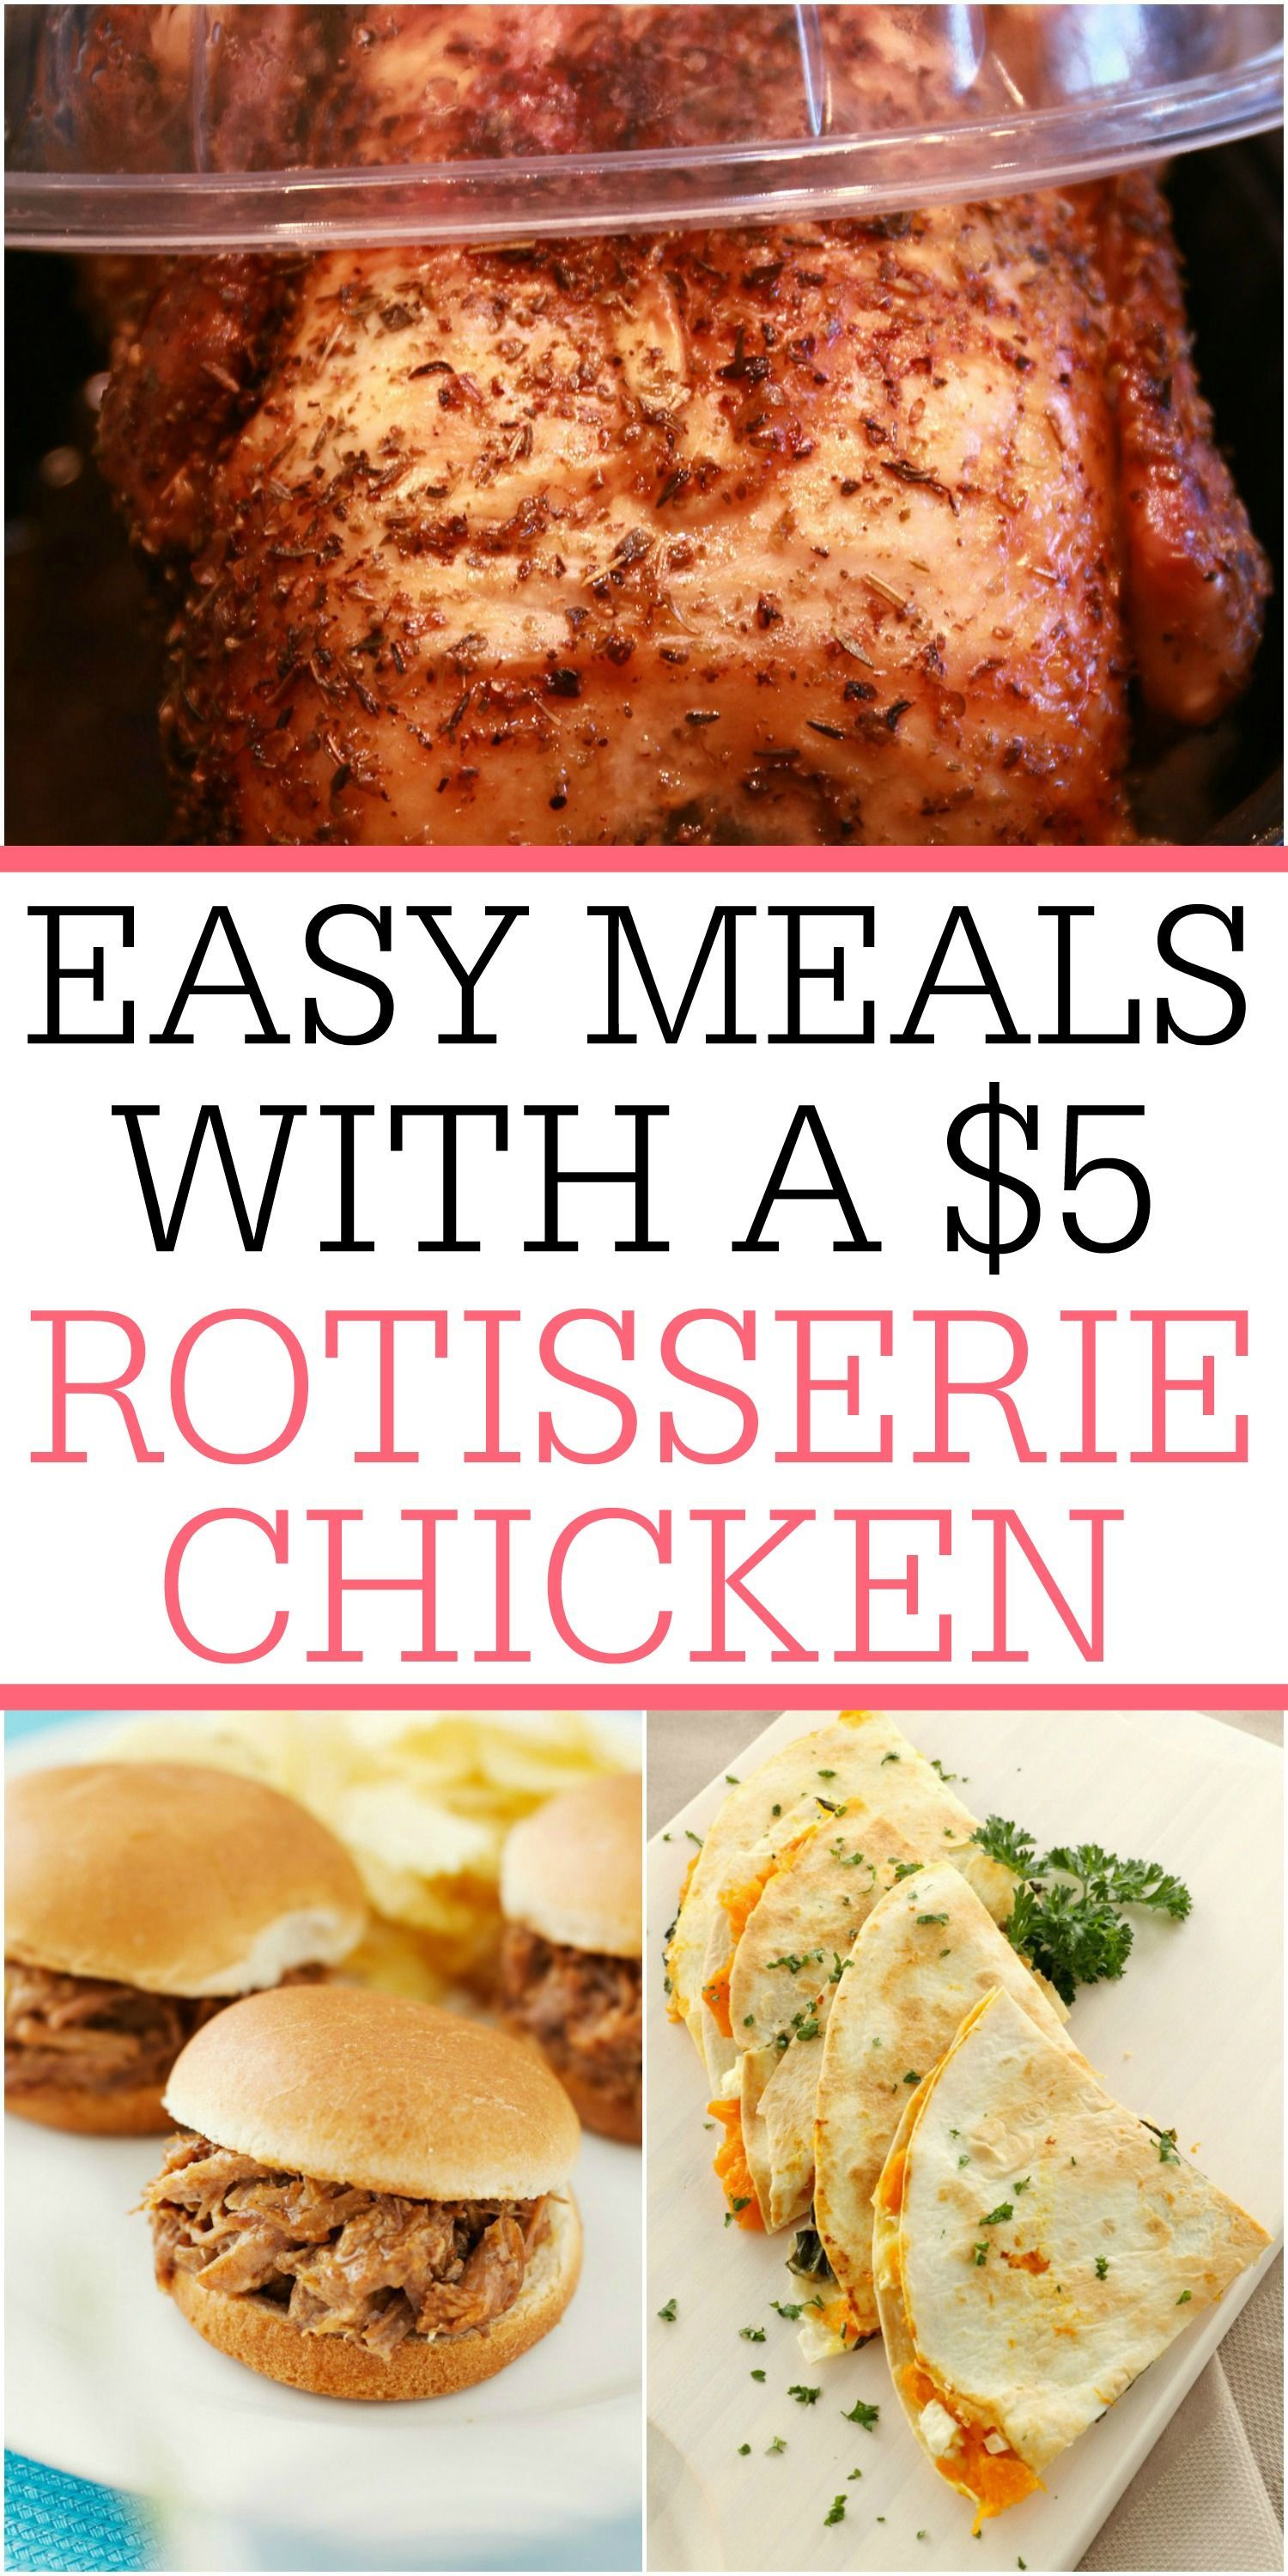 Easy Meals With A $5 Rotisserie Chicken images